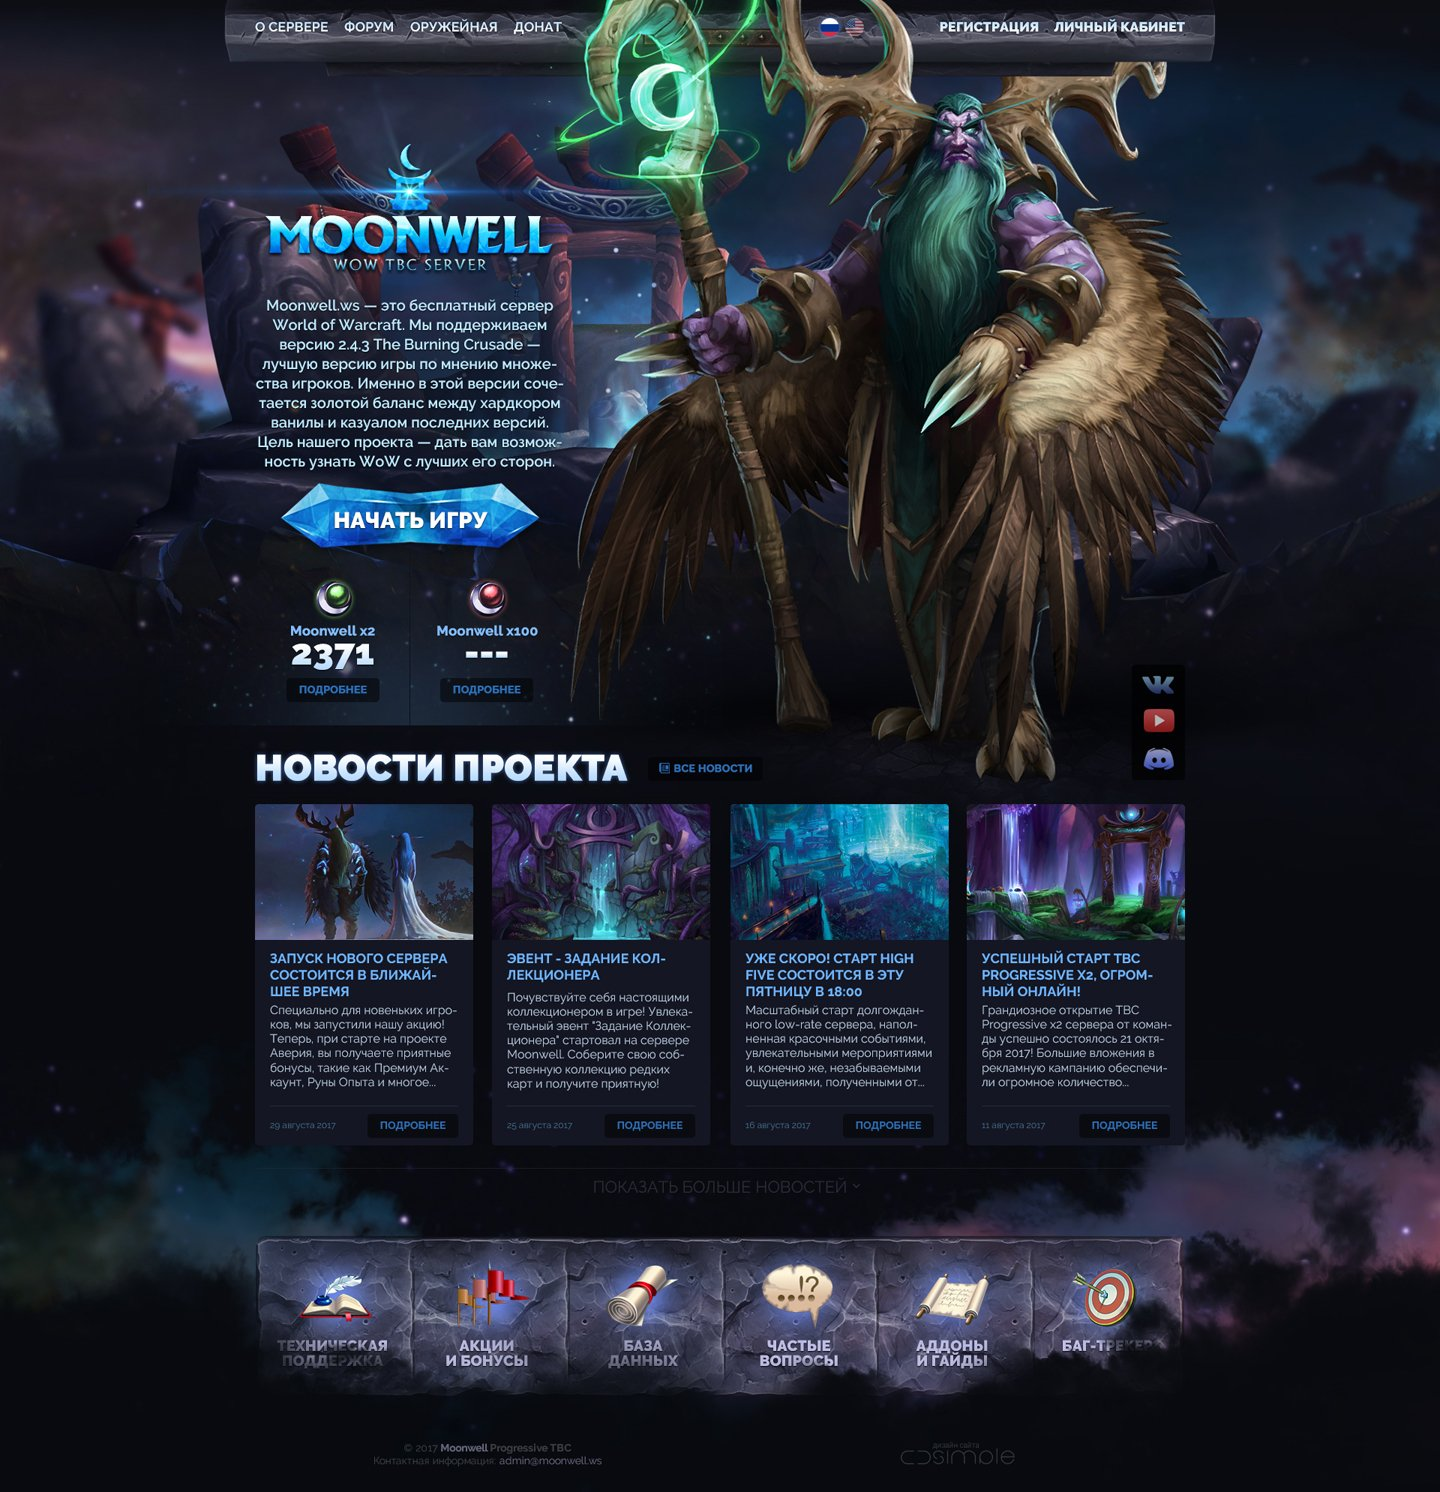 Moonwell > Website design for private server World of Warcraft. Main page